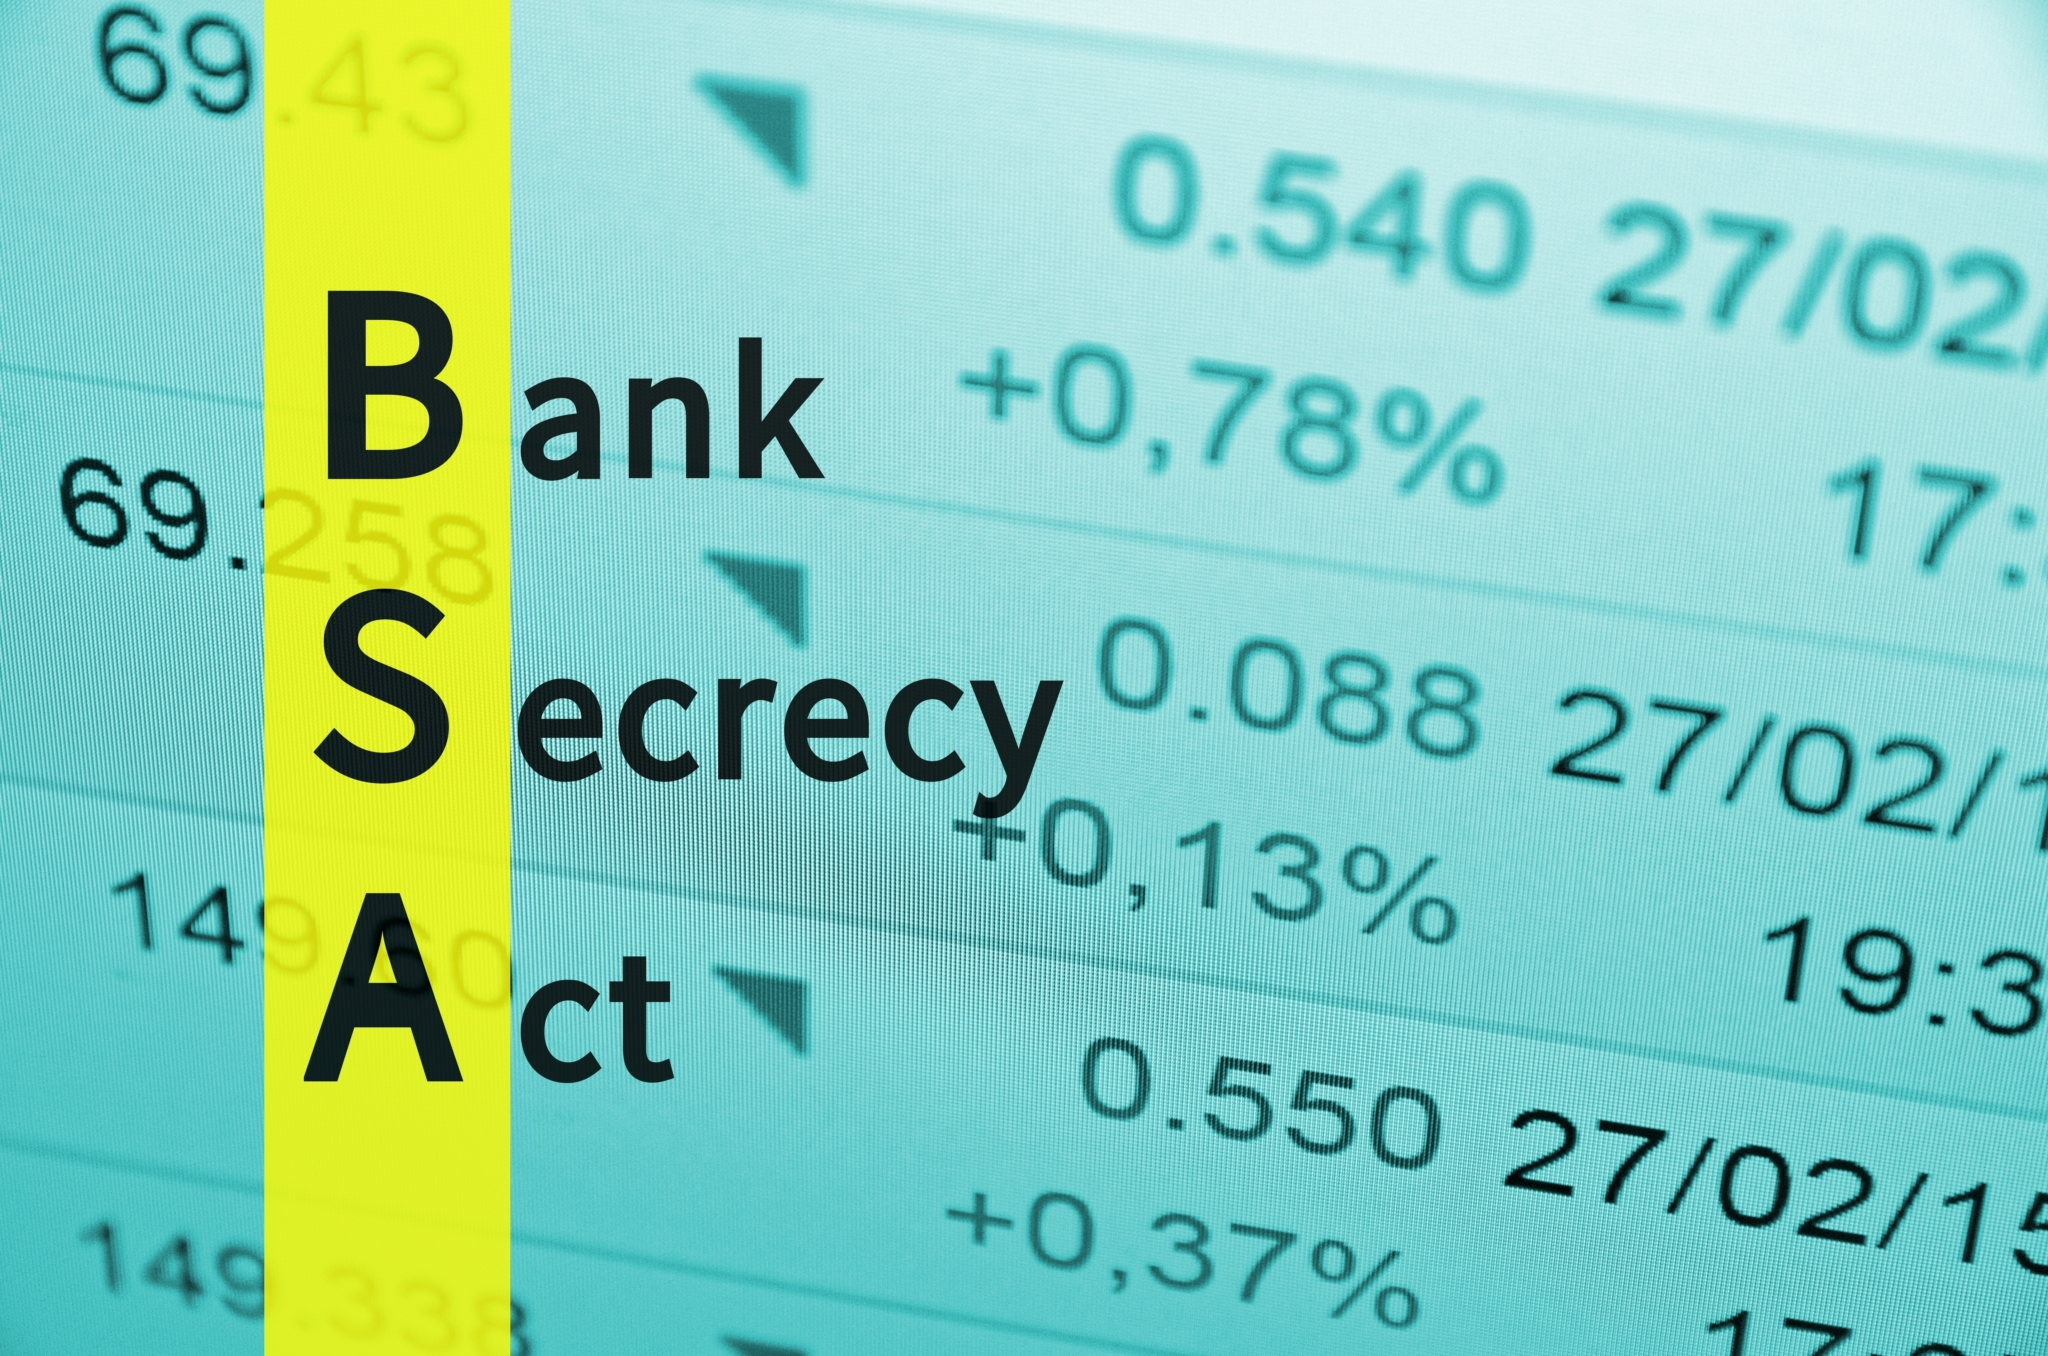 Bank Secrecy Act of 1970: What Are the Key Takeaways?